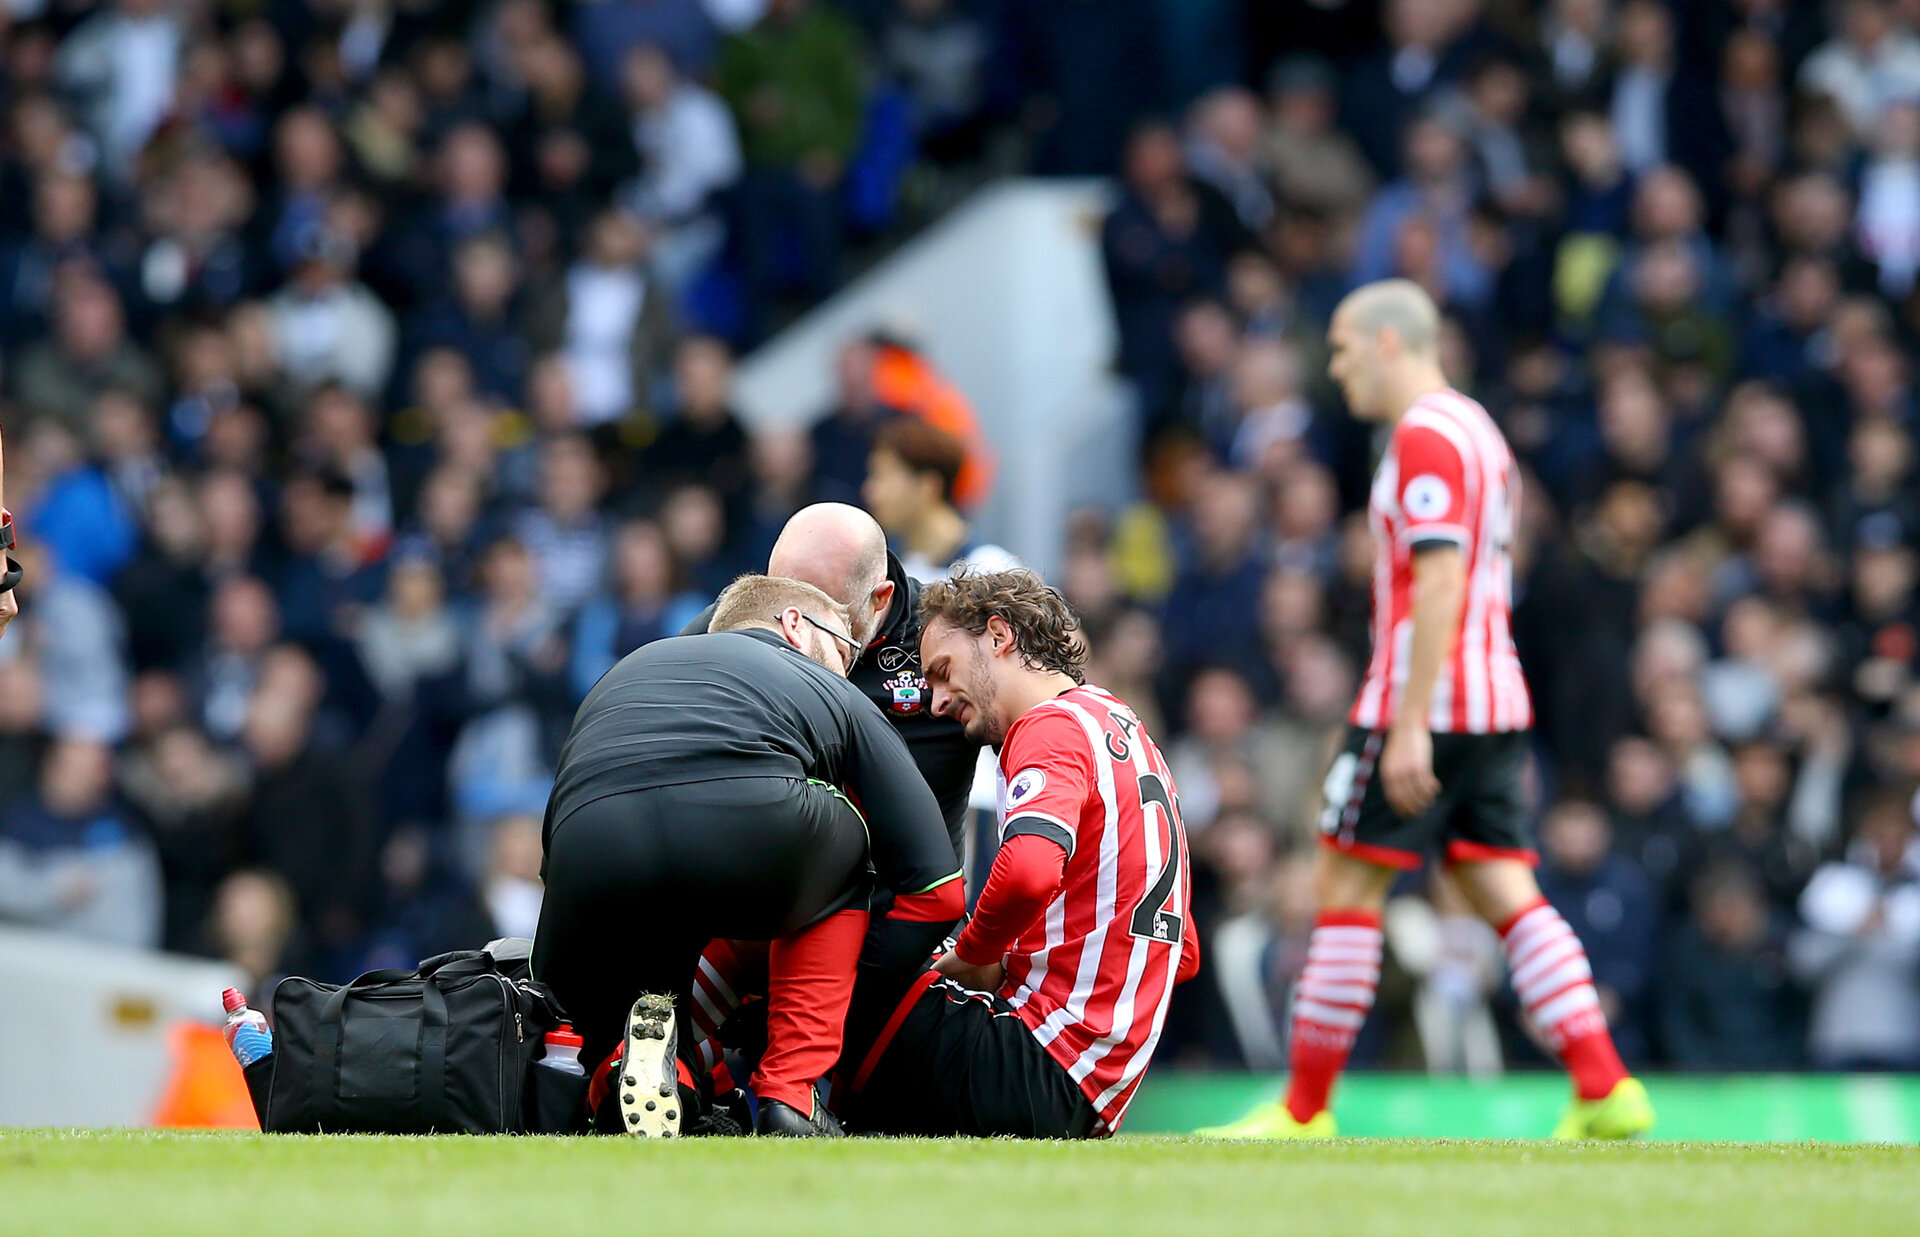 Manolo Gabbiadini goes of injured during the Premier League match between Tottenham Hotspur and Southampton at White Hart Lane, London, England on 19 March 2017. Photo by Matt  Watson/SFC/Digital South.